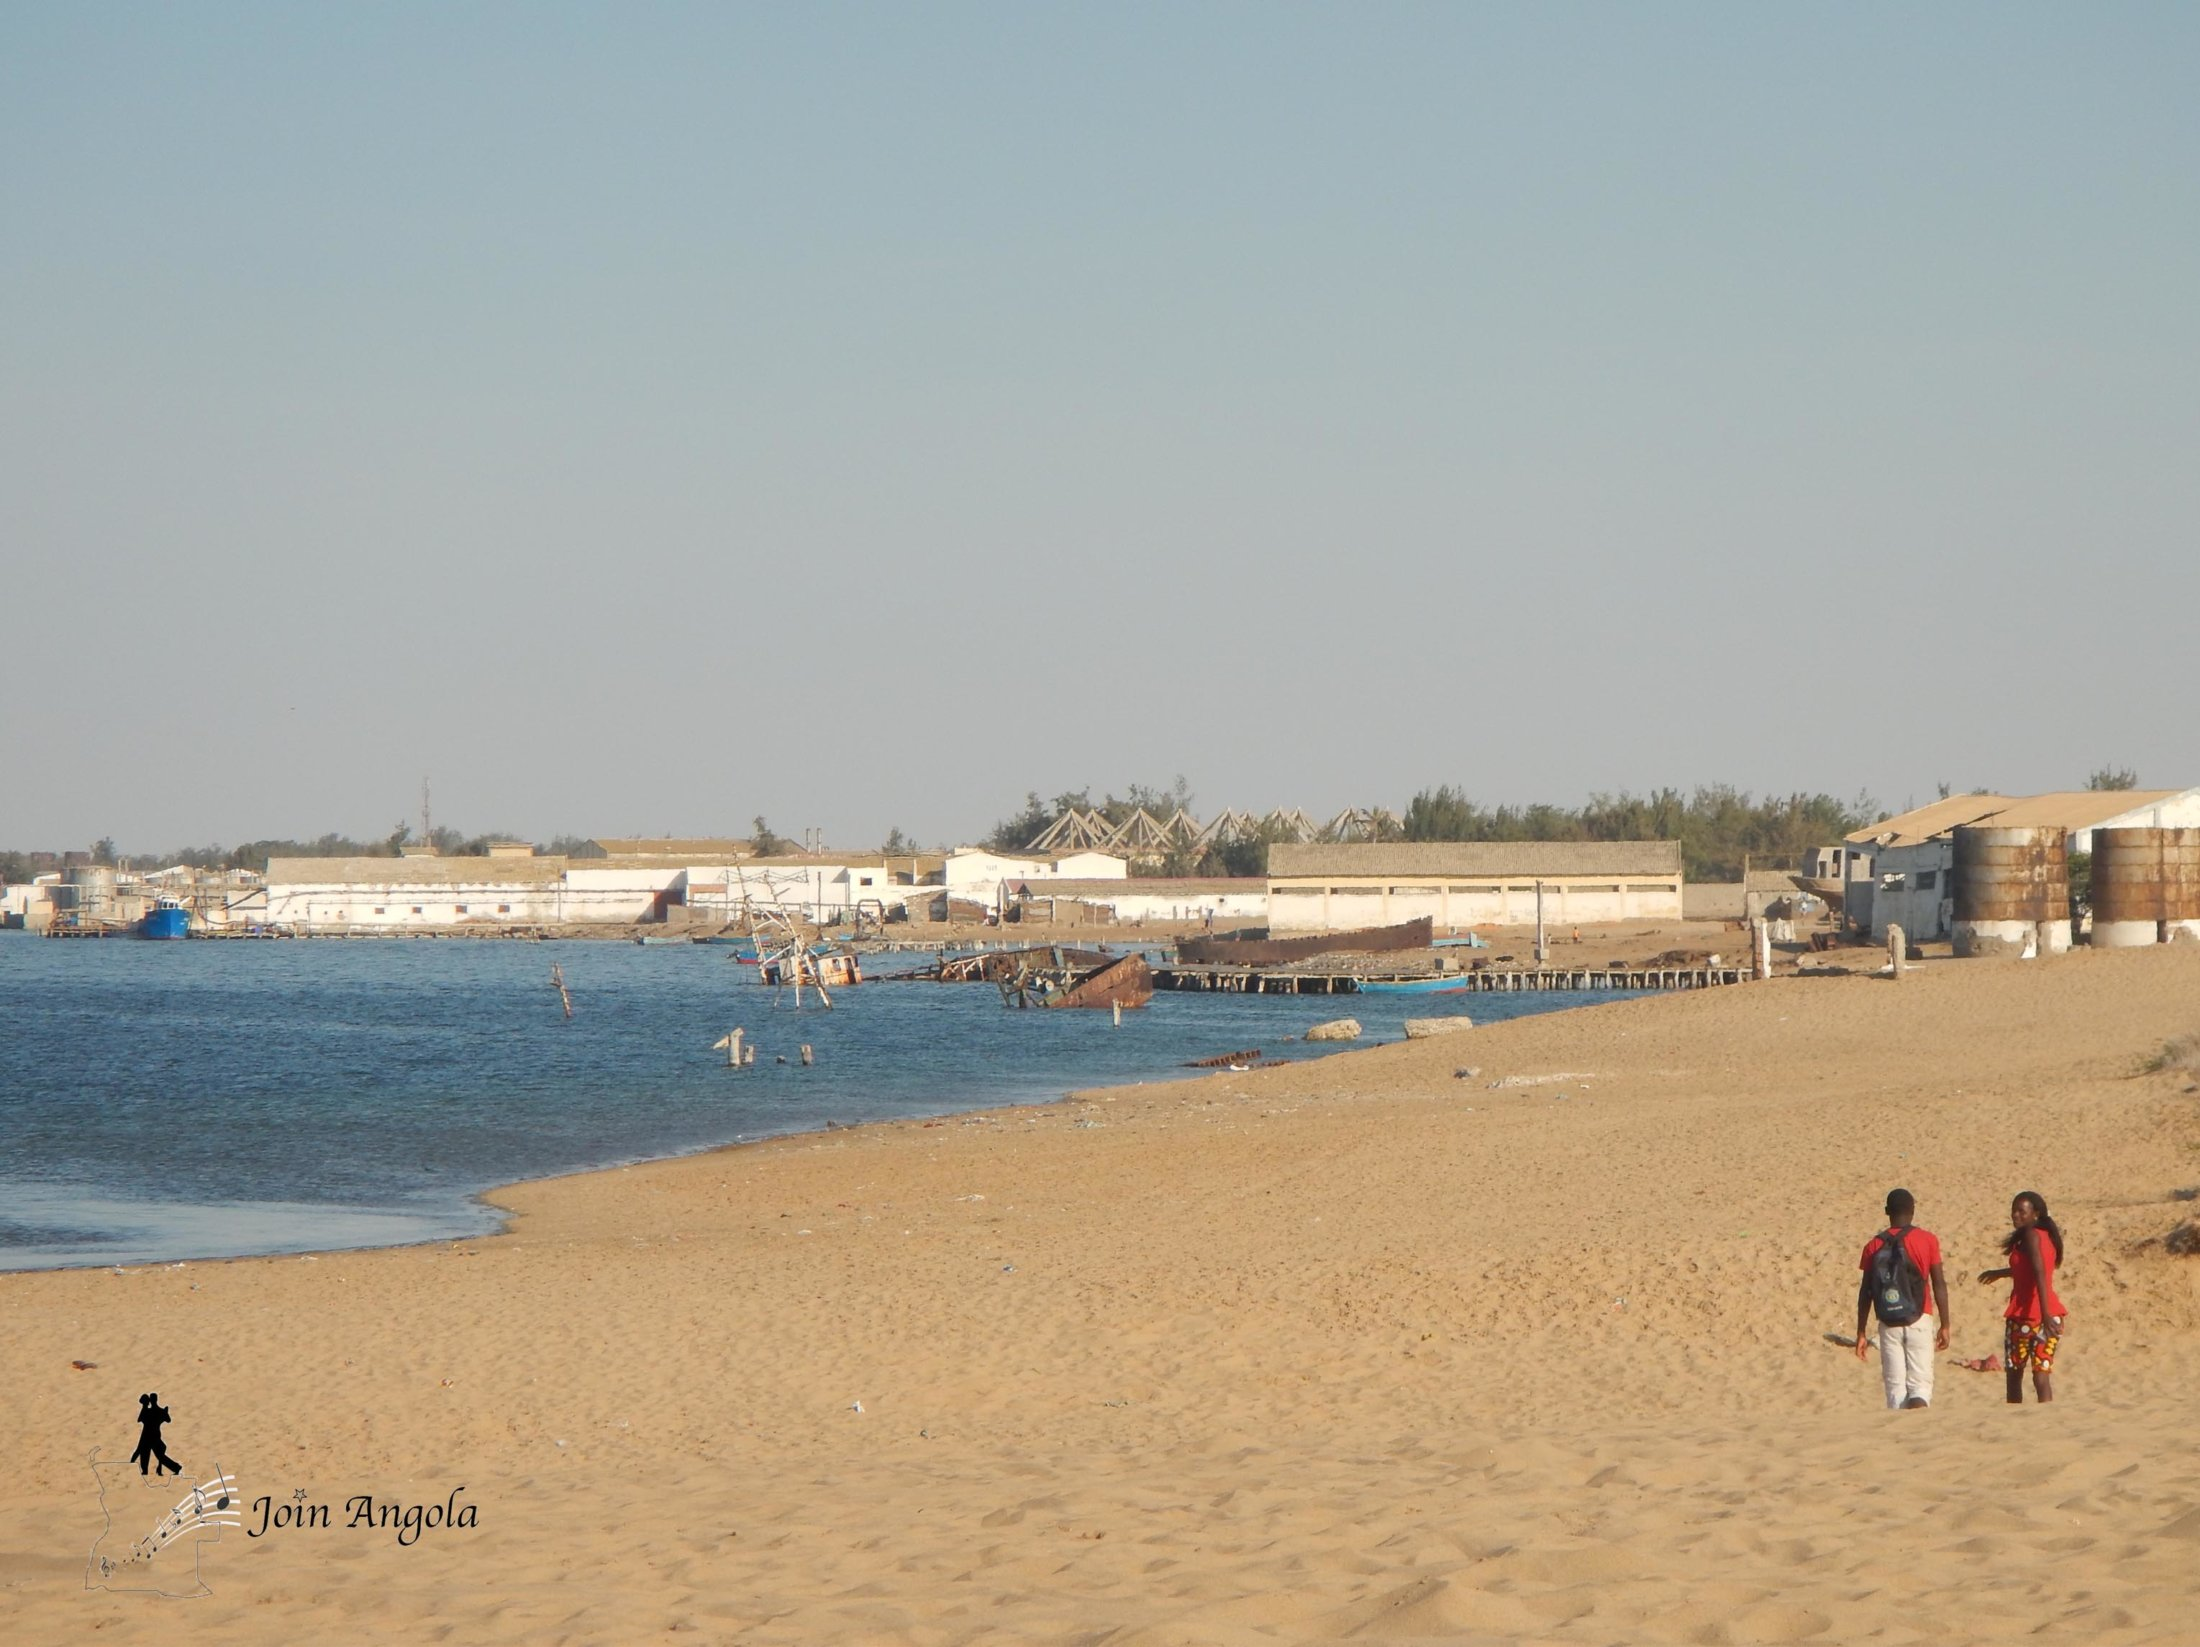 The city of Tombwa is the southern-most settlment of the Angolan coast, surrounded on one side by the ocean and on the other by the Namibian desert that extends to Namibia and the Skeleton coast.